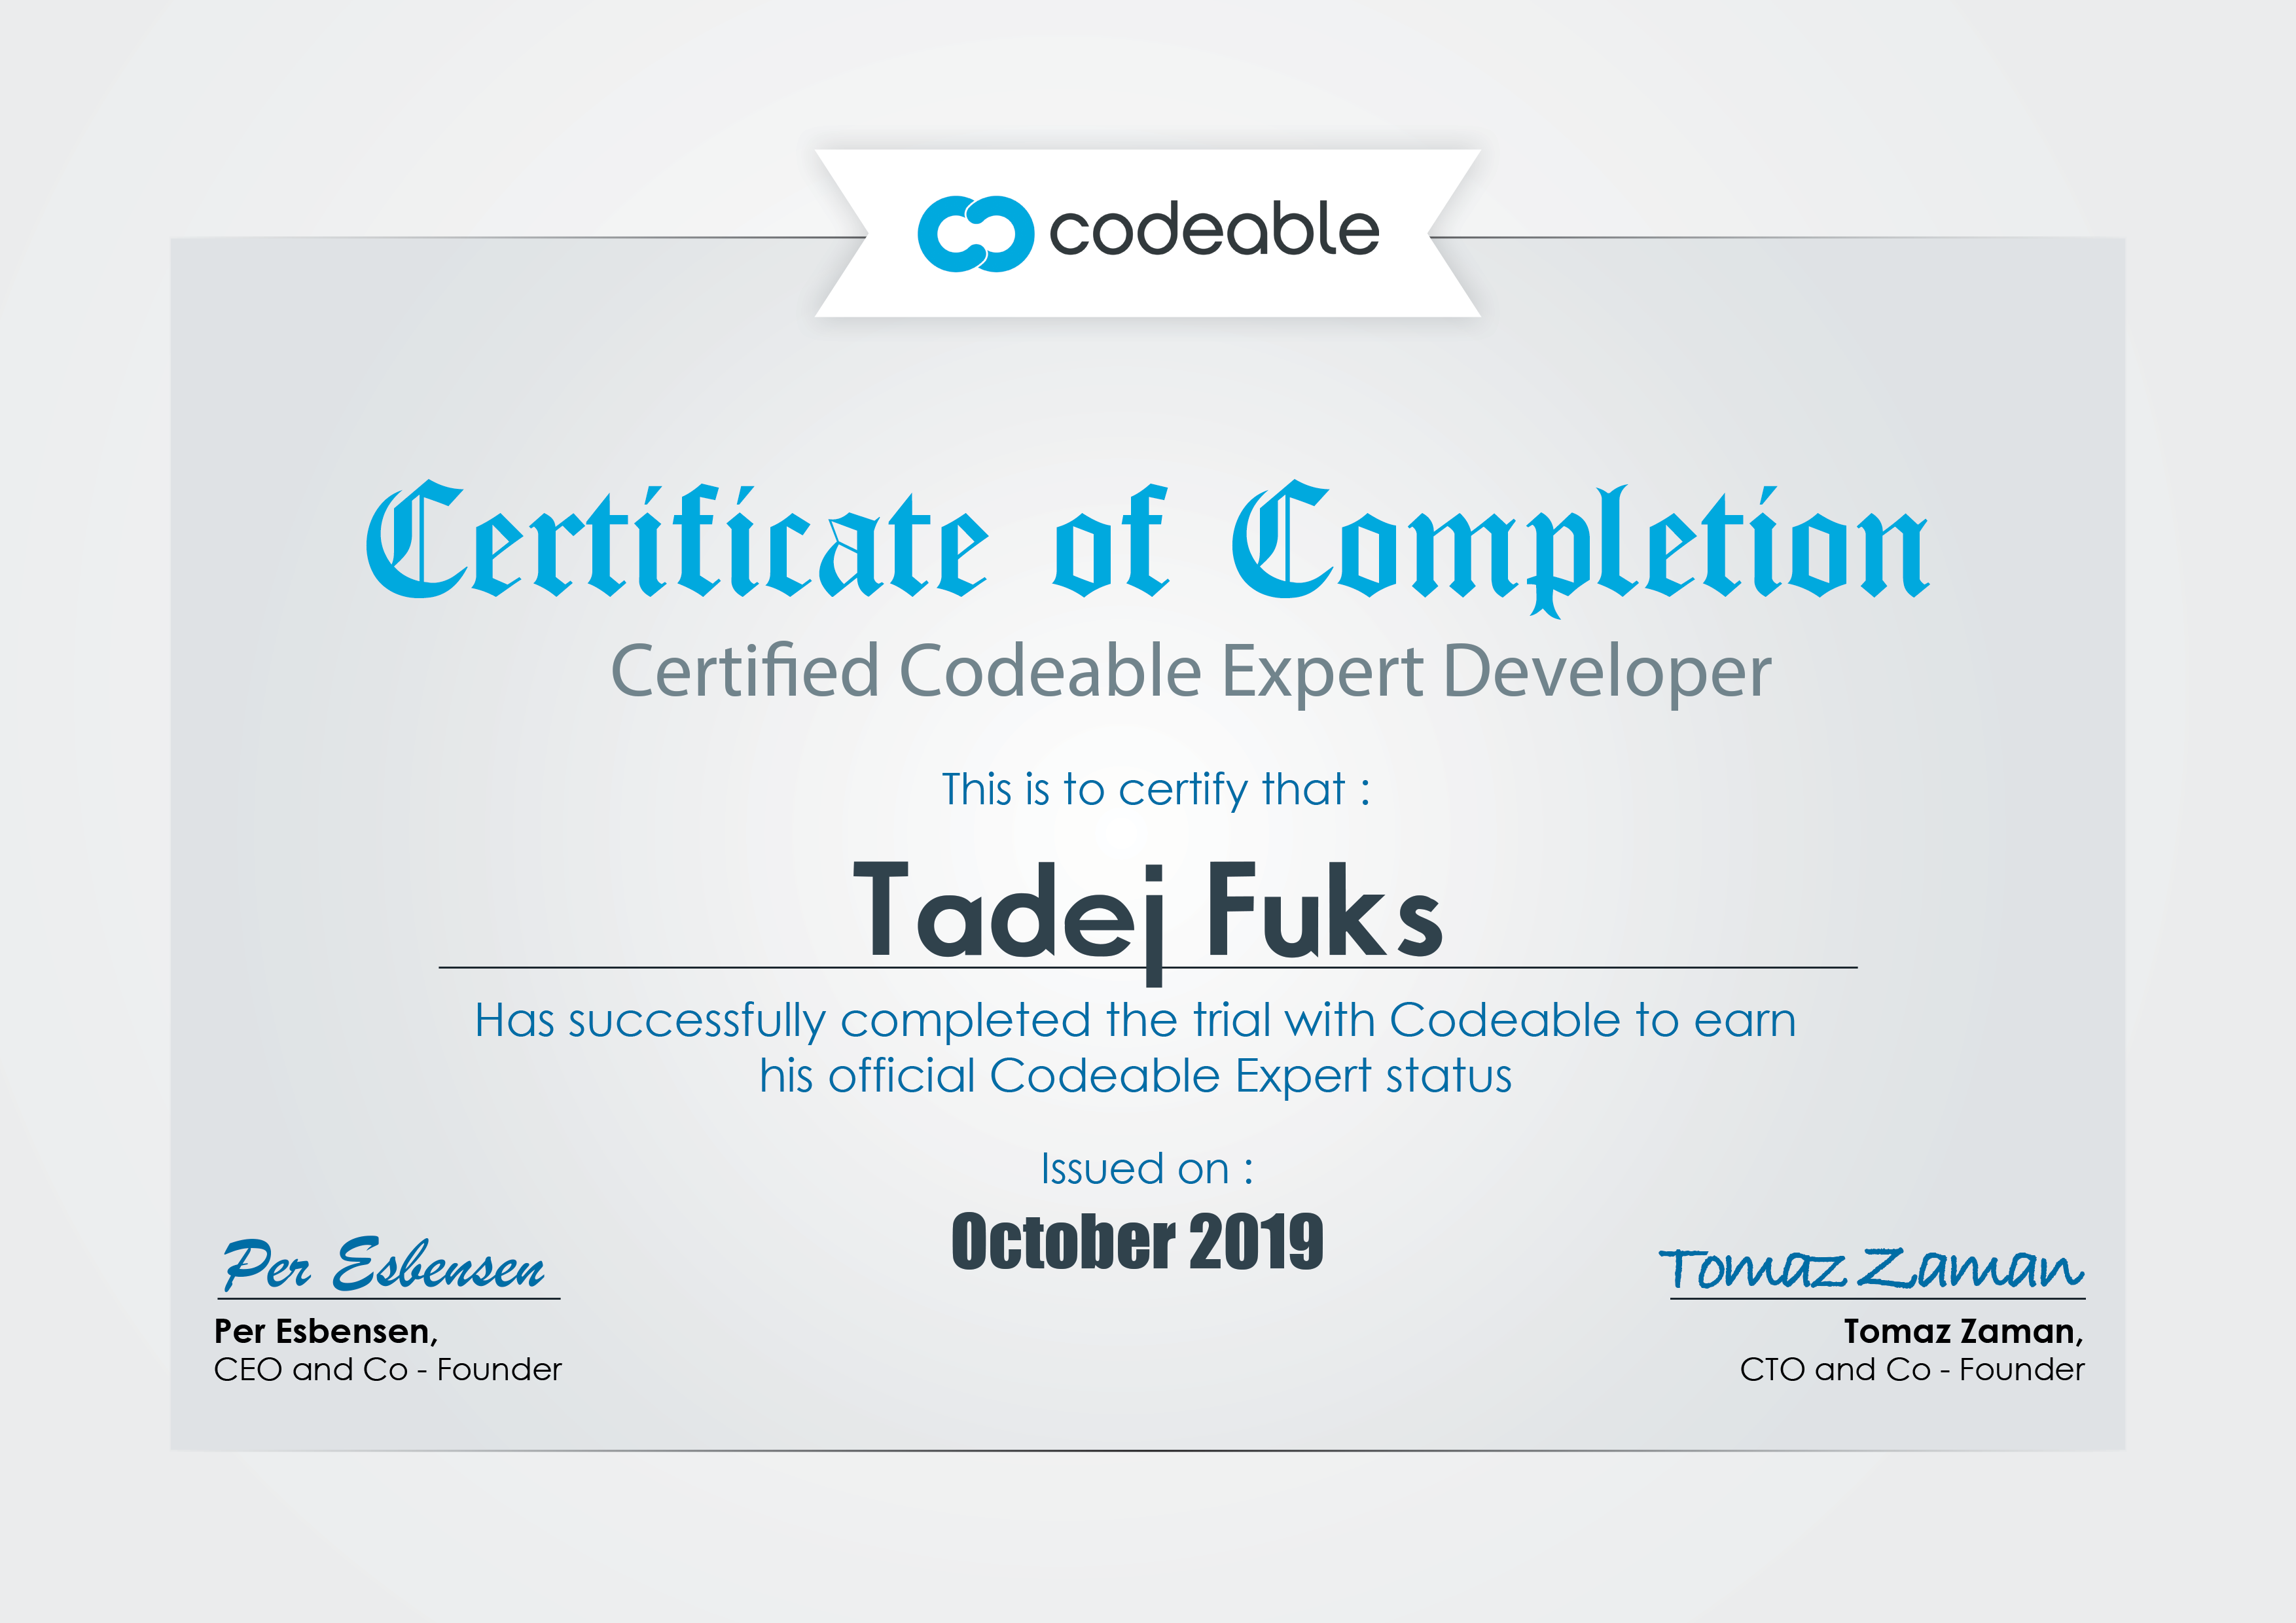 Tadej Fuks Certified Codeable Expert